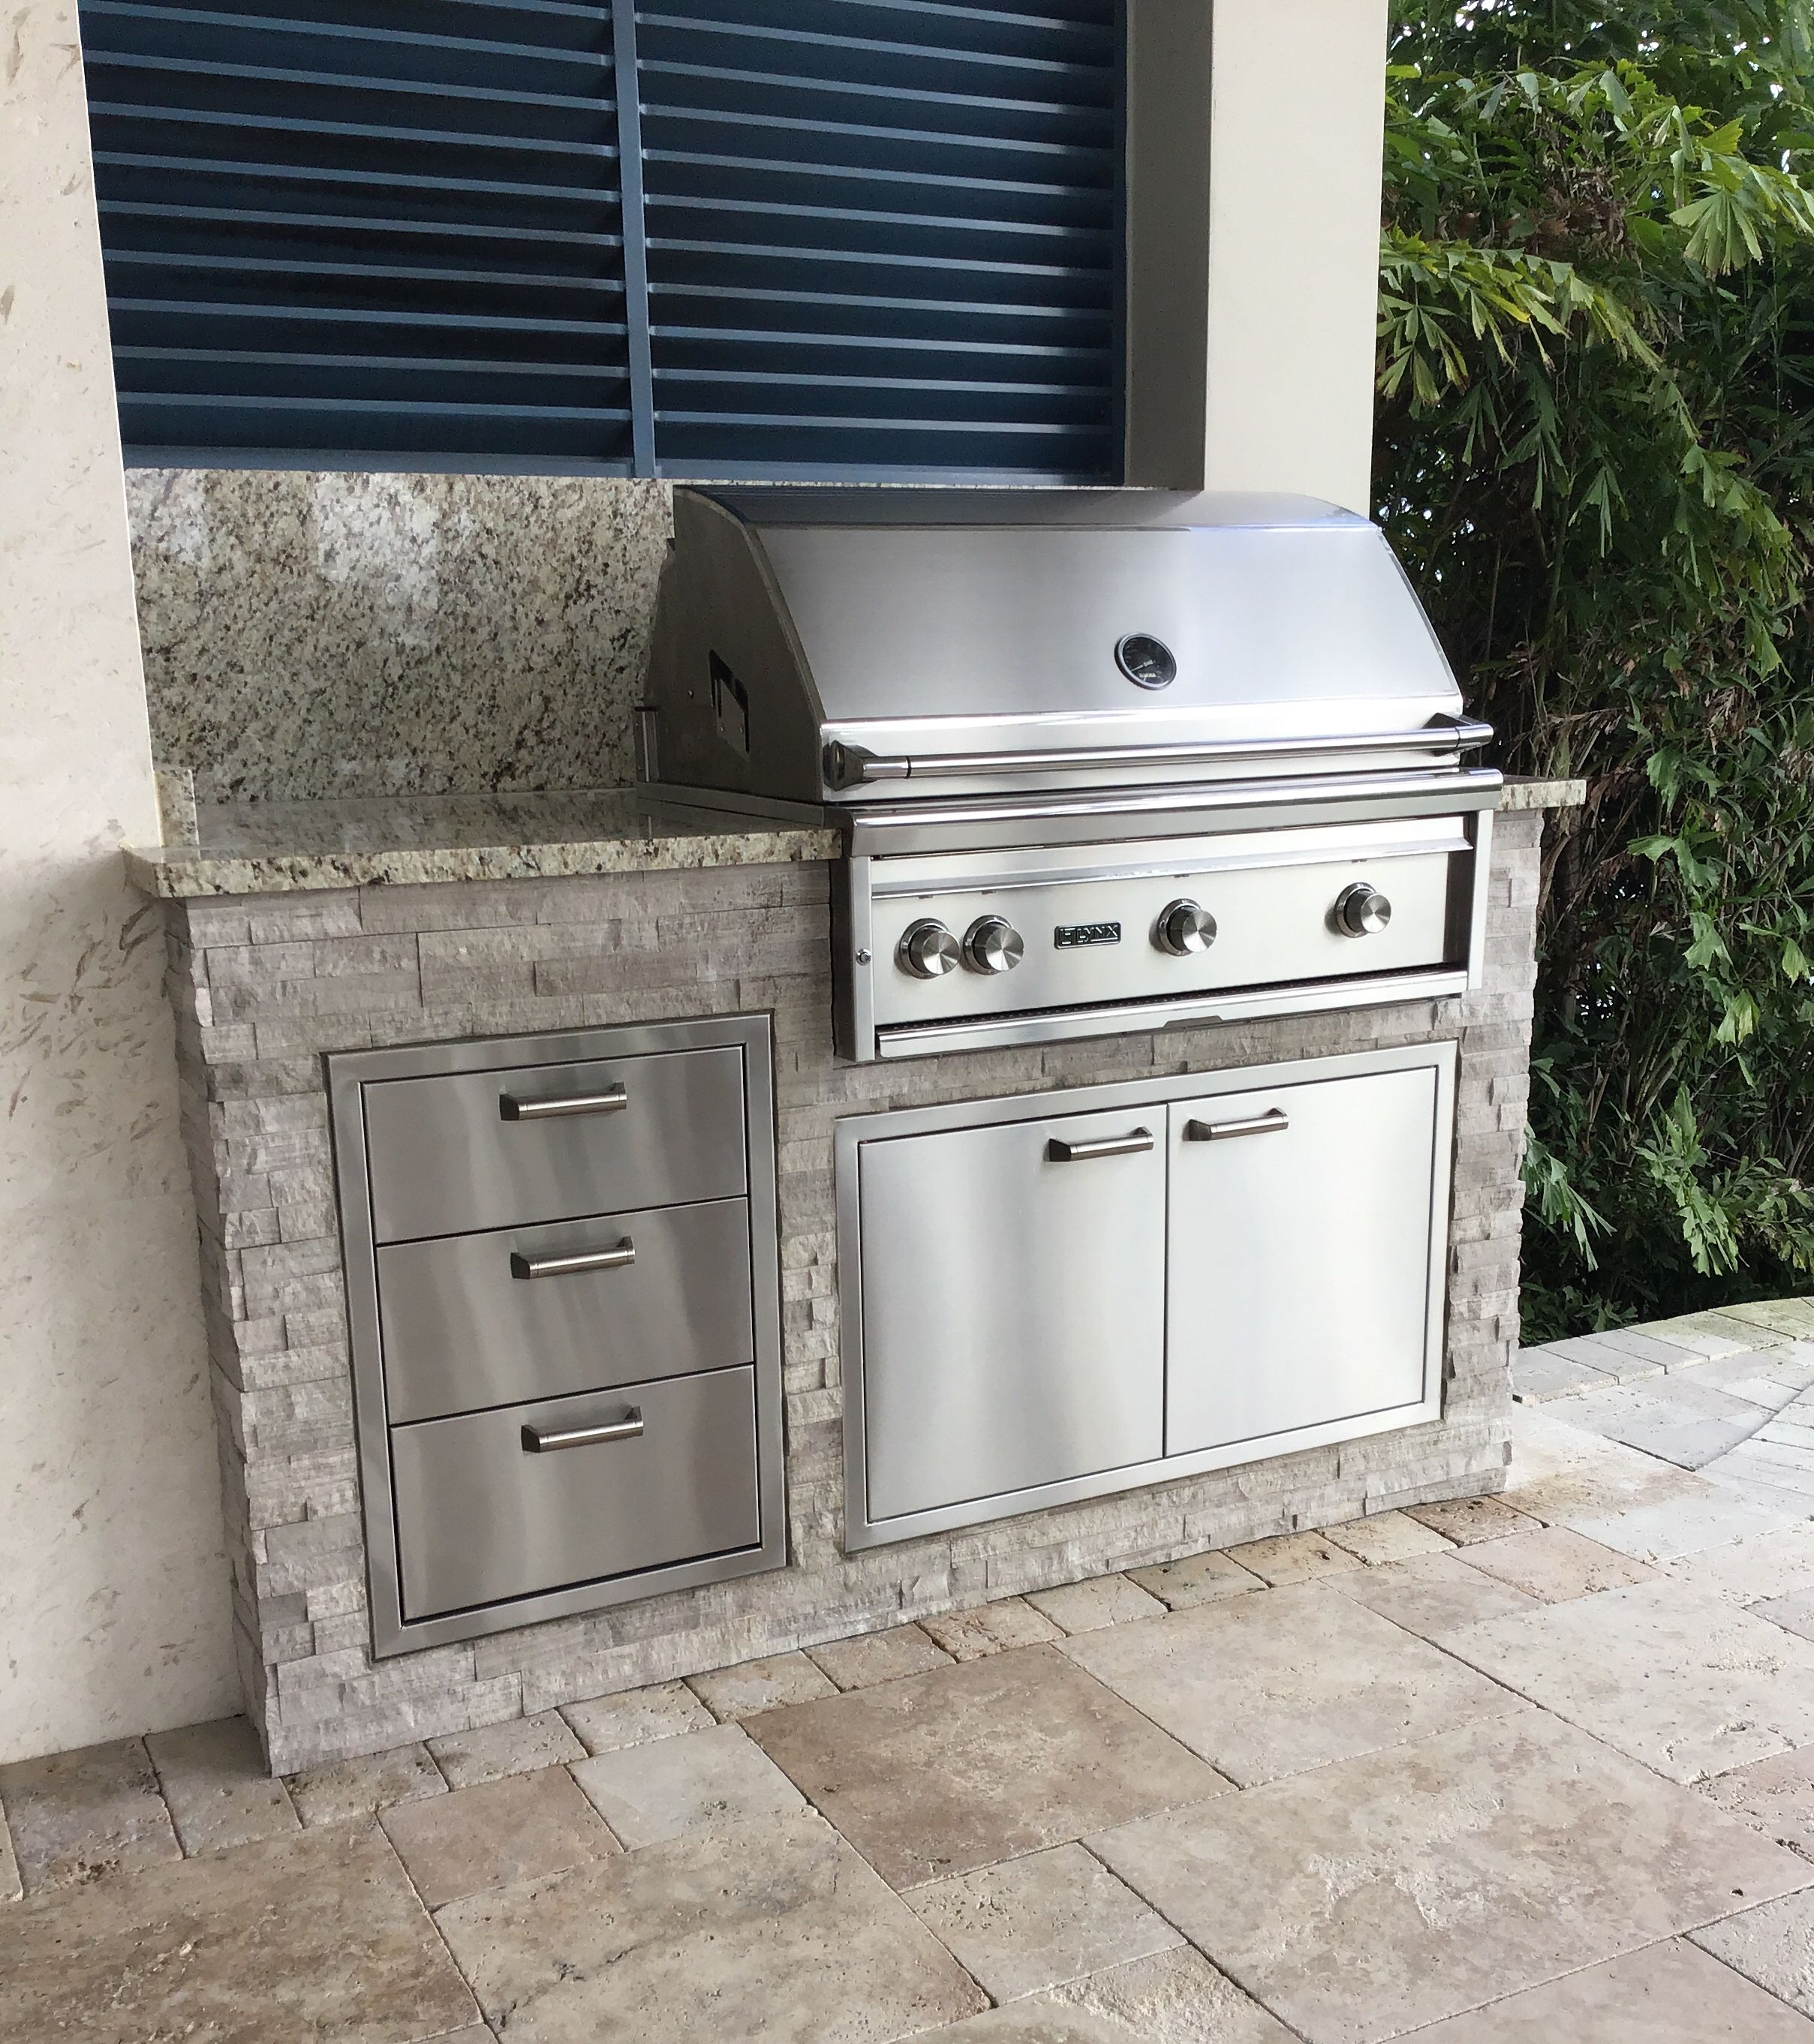 A Little Part Of This New Custom Outdoor Kitchen Fischmanoutdoorkitchens Palmbeachgrillcleaner Outdoorentert With Images Outdoor Kitchen Outdoor Appliances Clean Grill